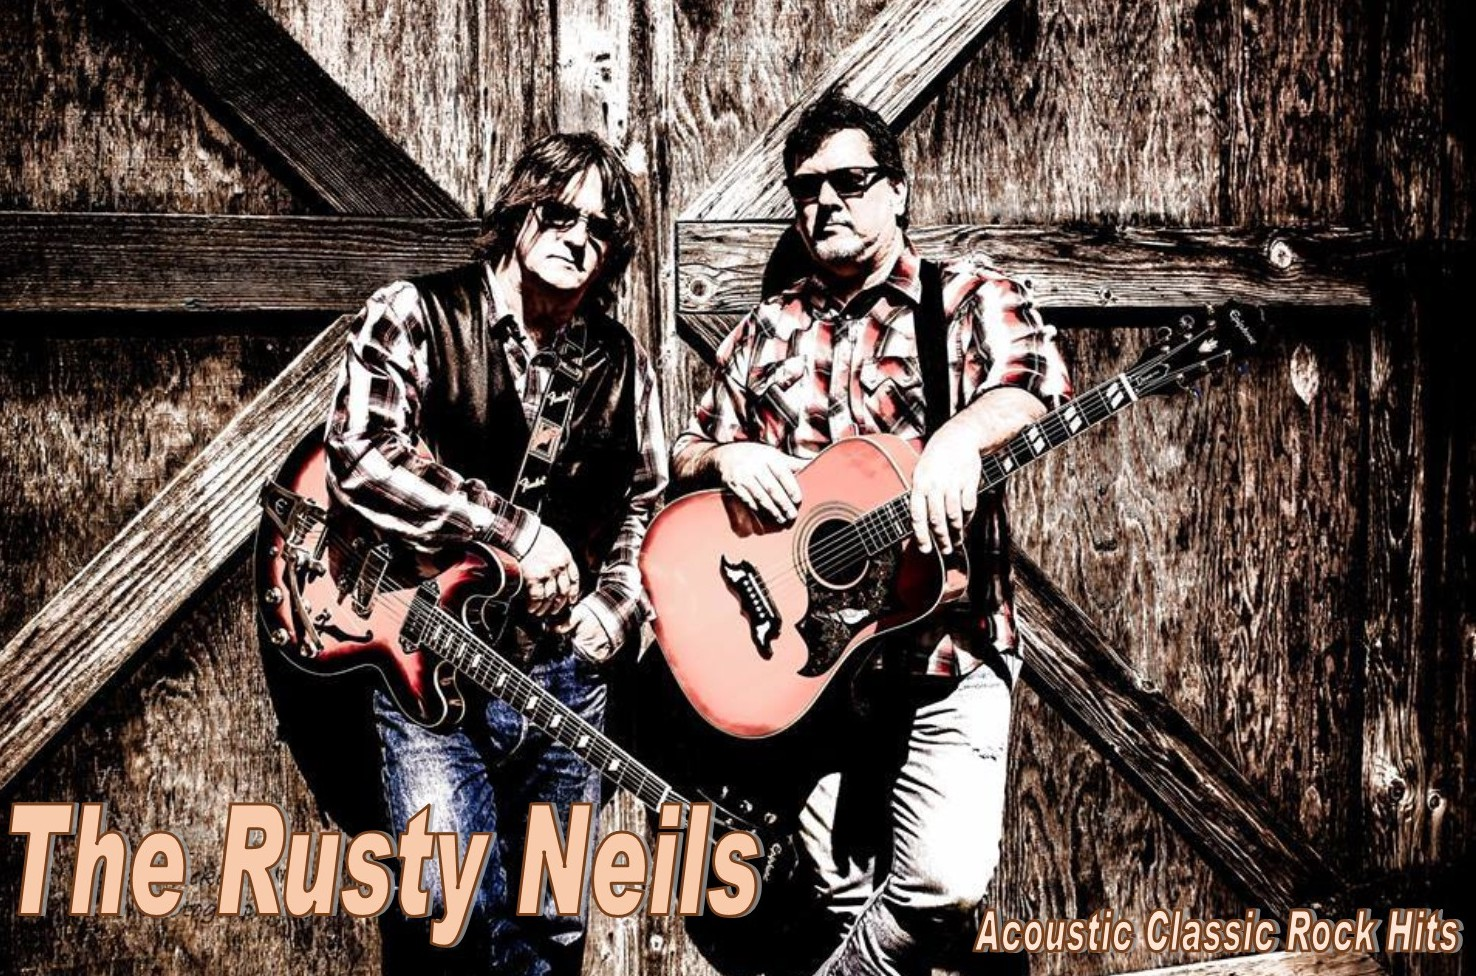 The Rusty Neils